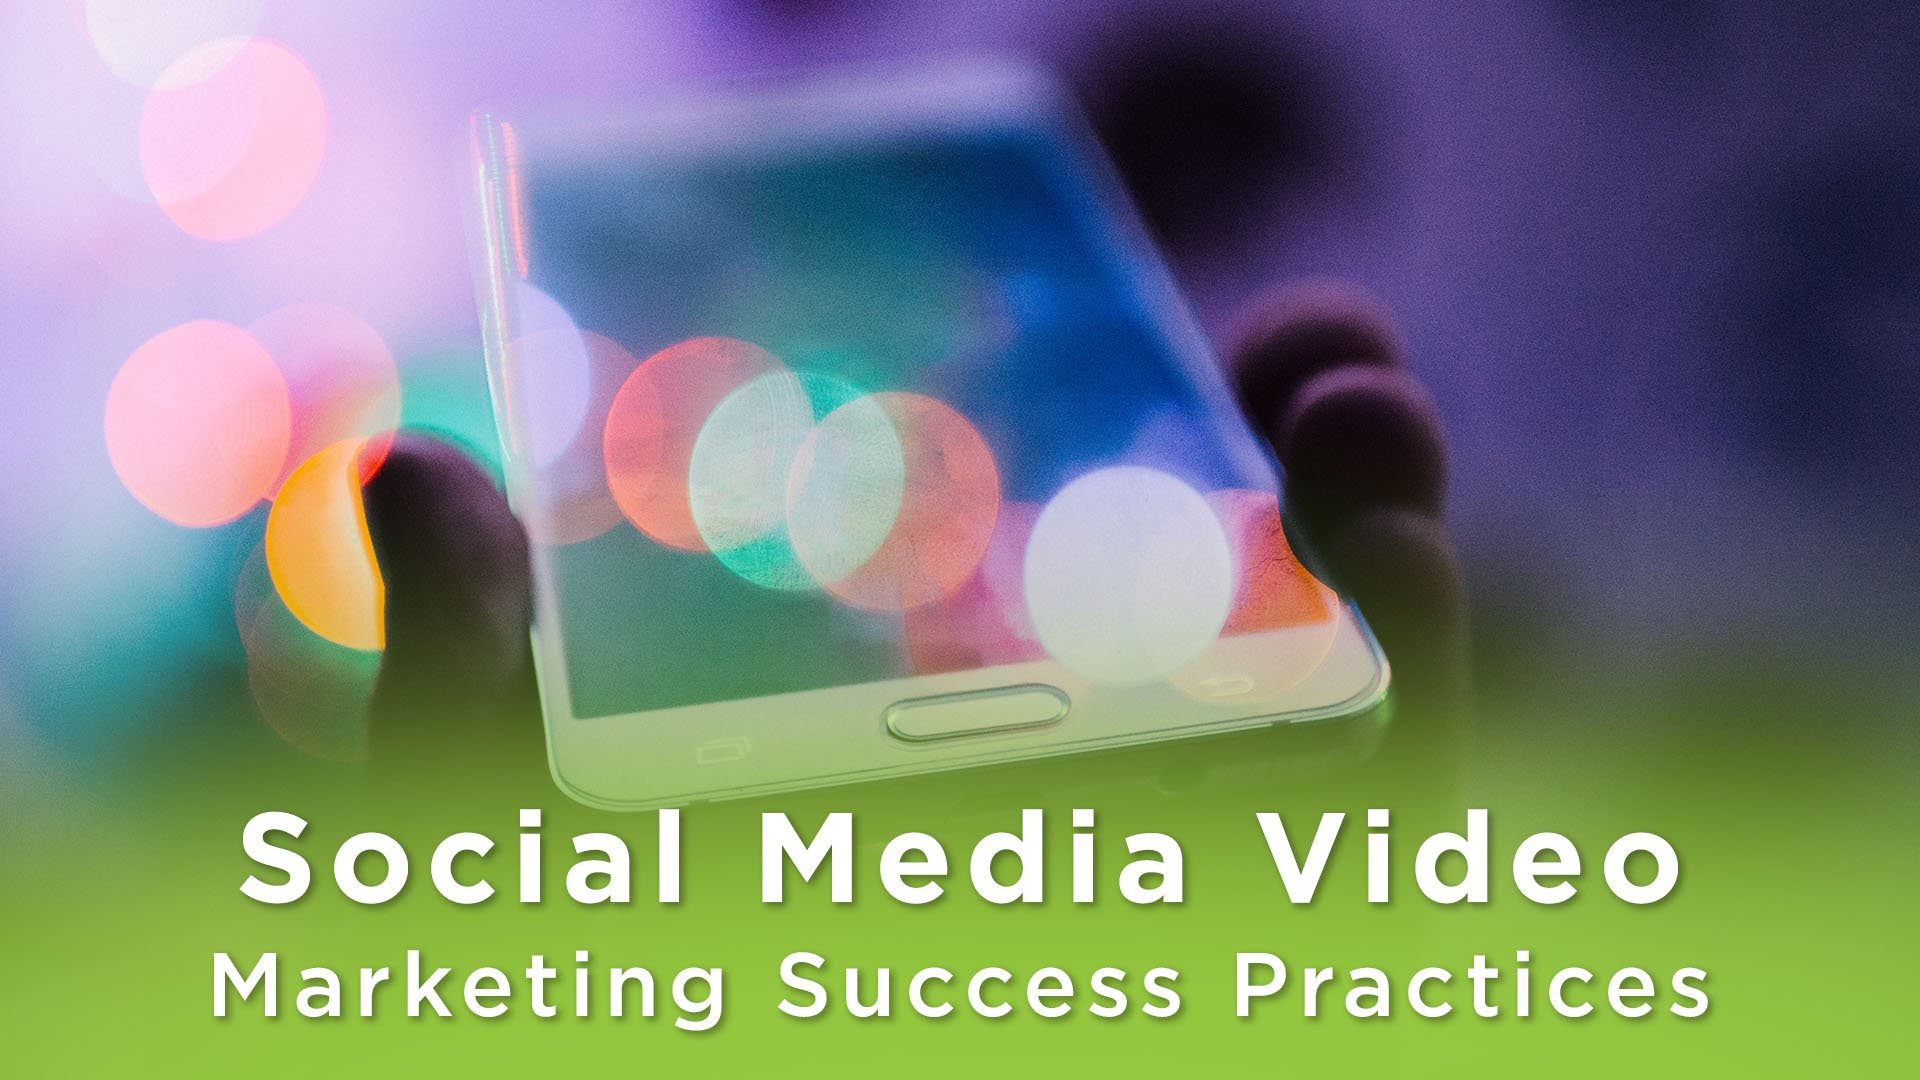 Hand holding a smart phone. Text that says: Social Video Marketing Success Practices